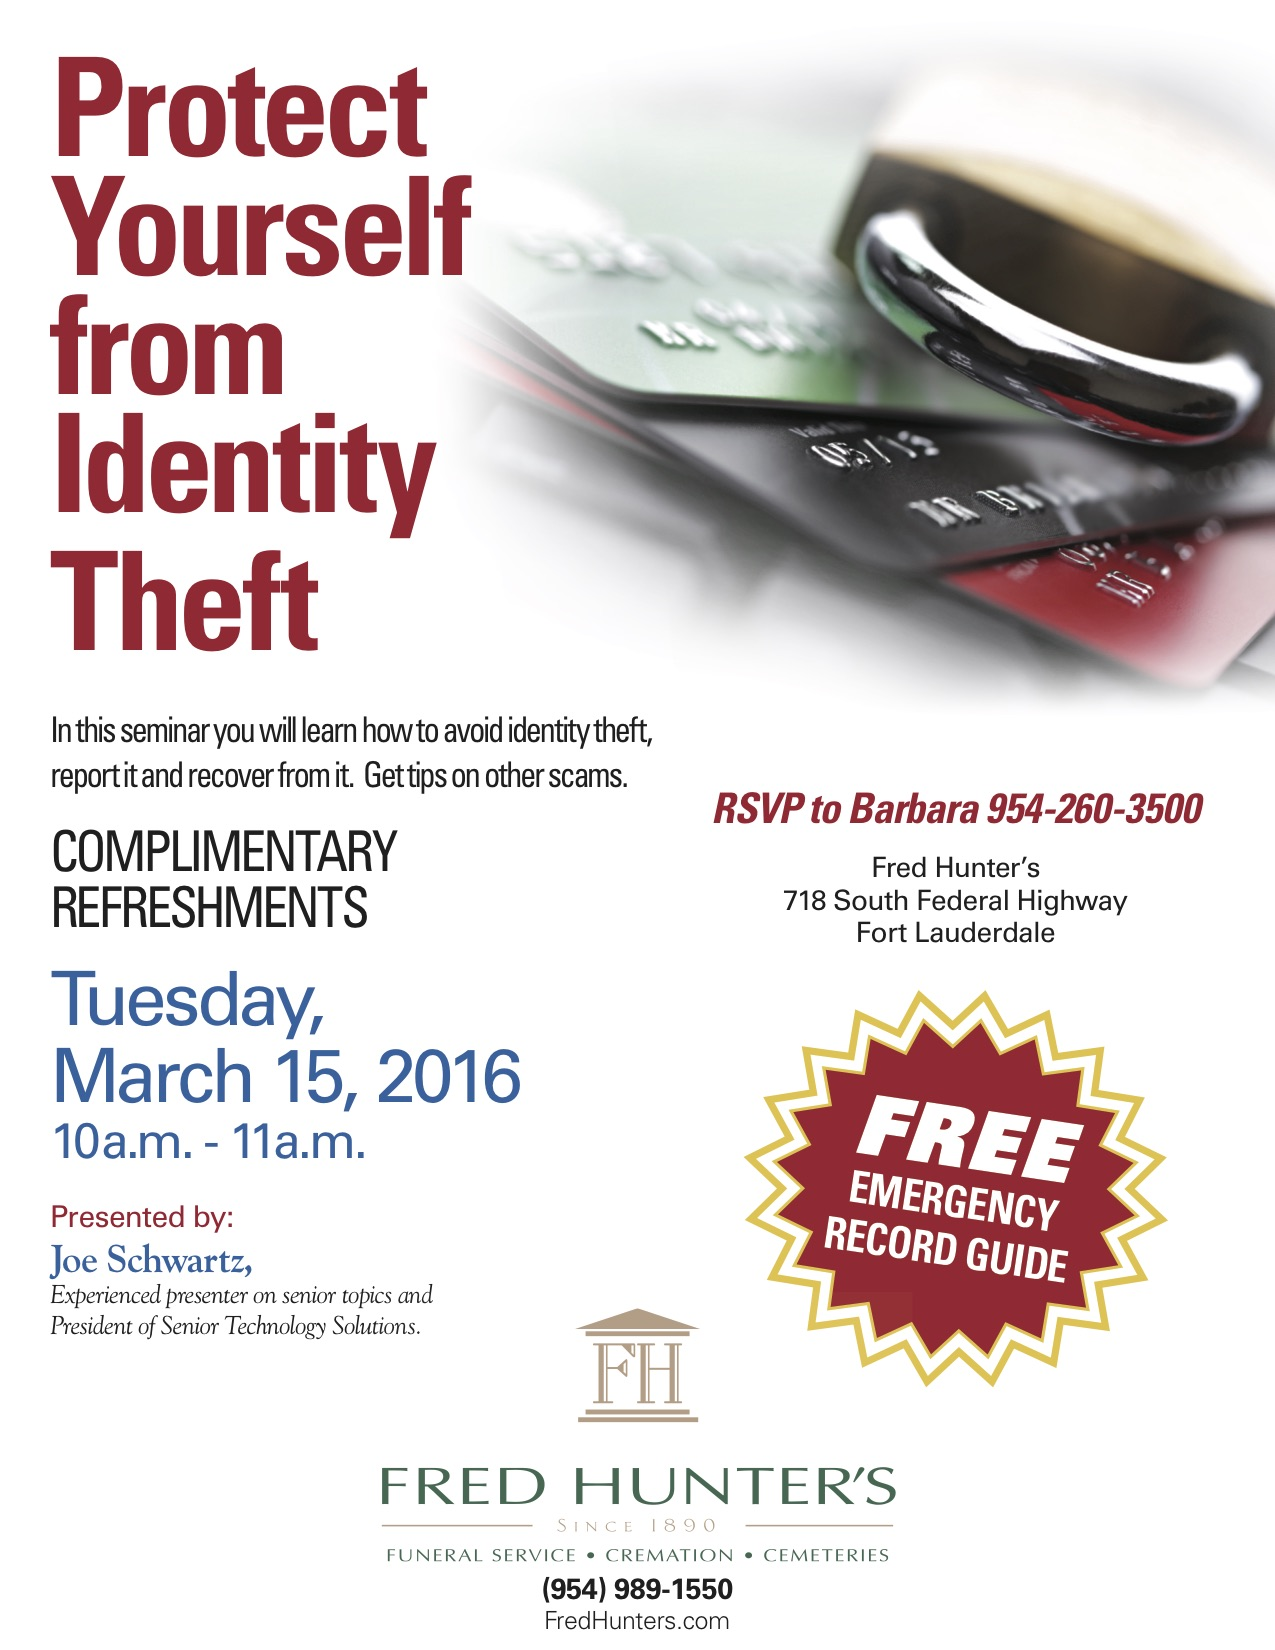 Protect yourself from identity theft fort lauderdale funeral home please click the image for more information solutioingenieria Choice Image